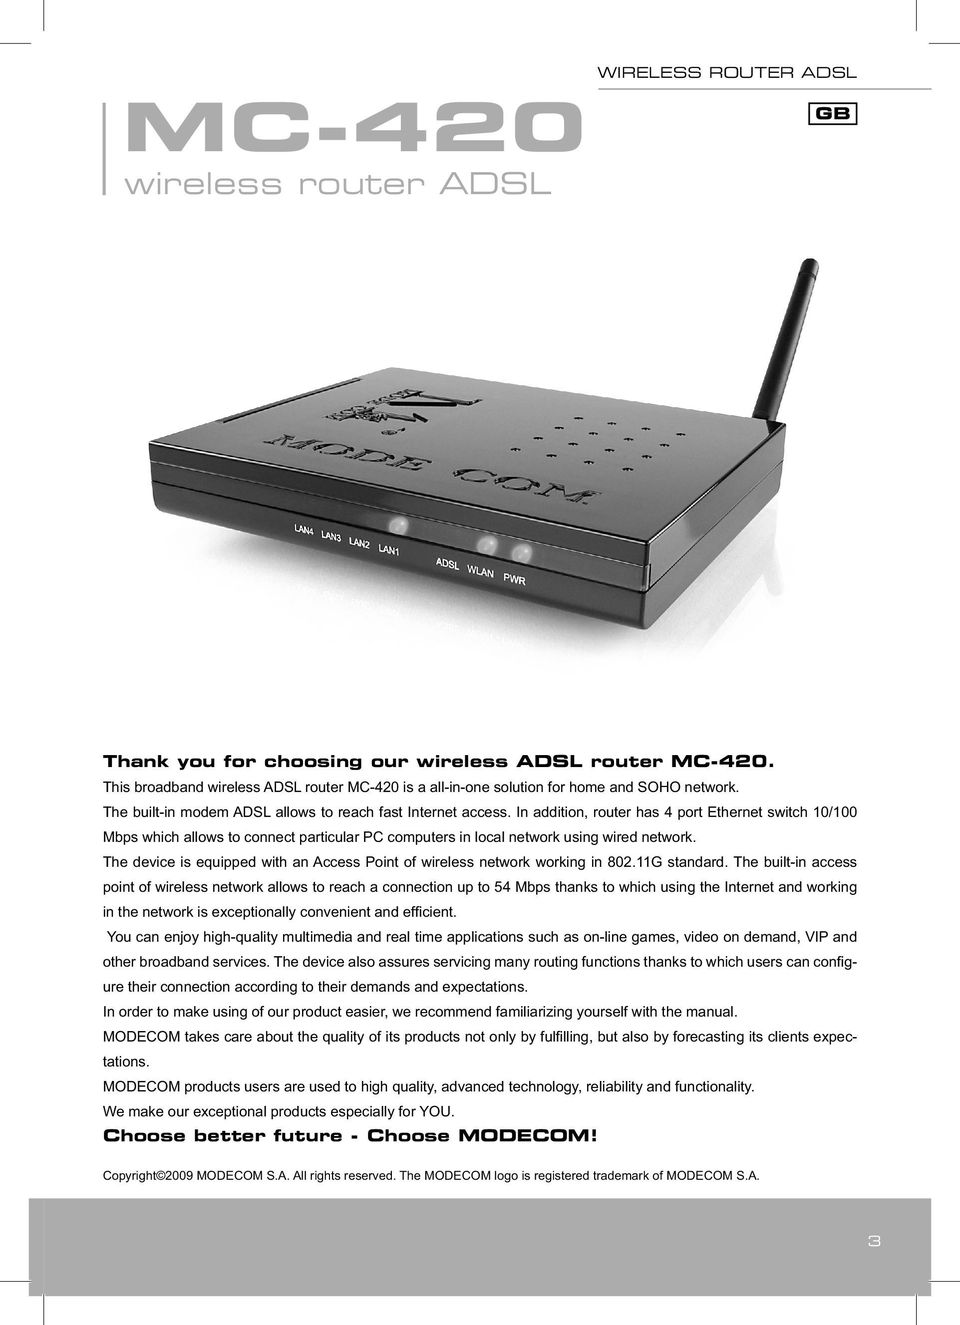 In addition, router has 4 port Ethernet switch 10/100 Mbps which allows to connect particular PC computers in local network using wired network.